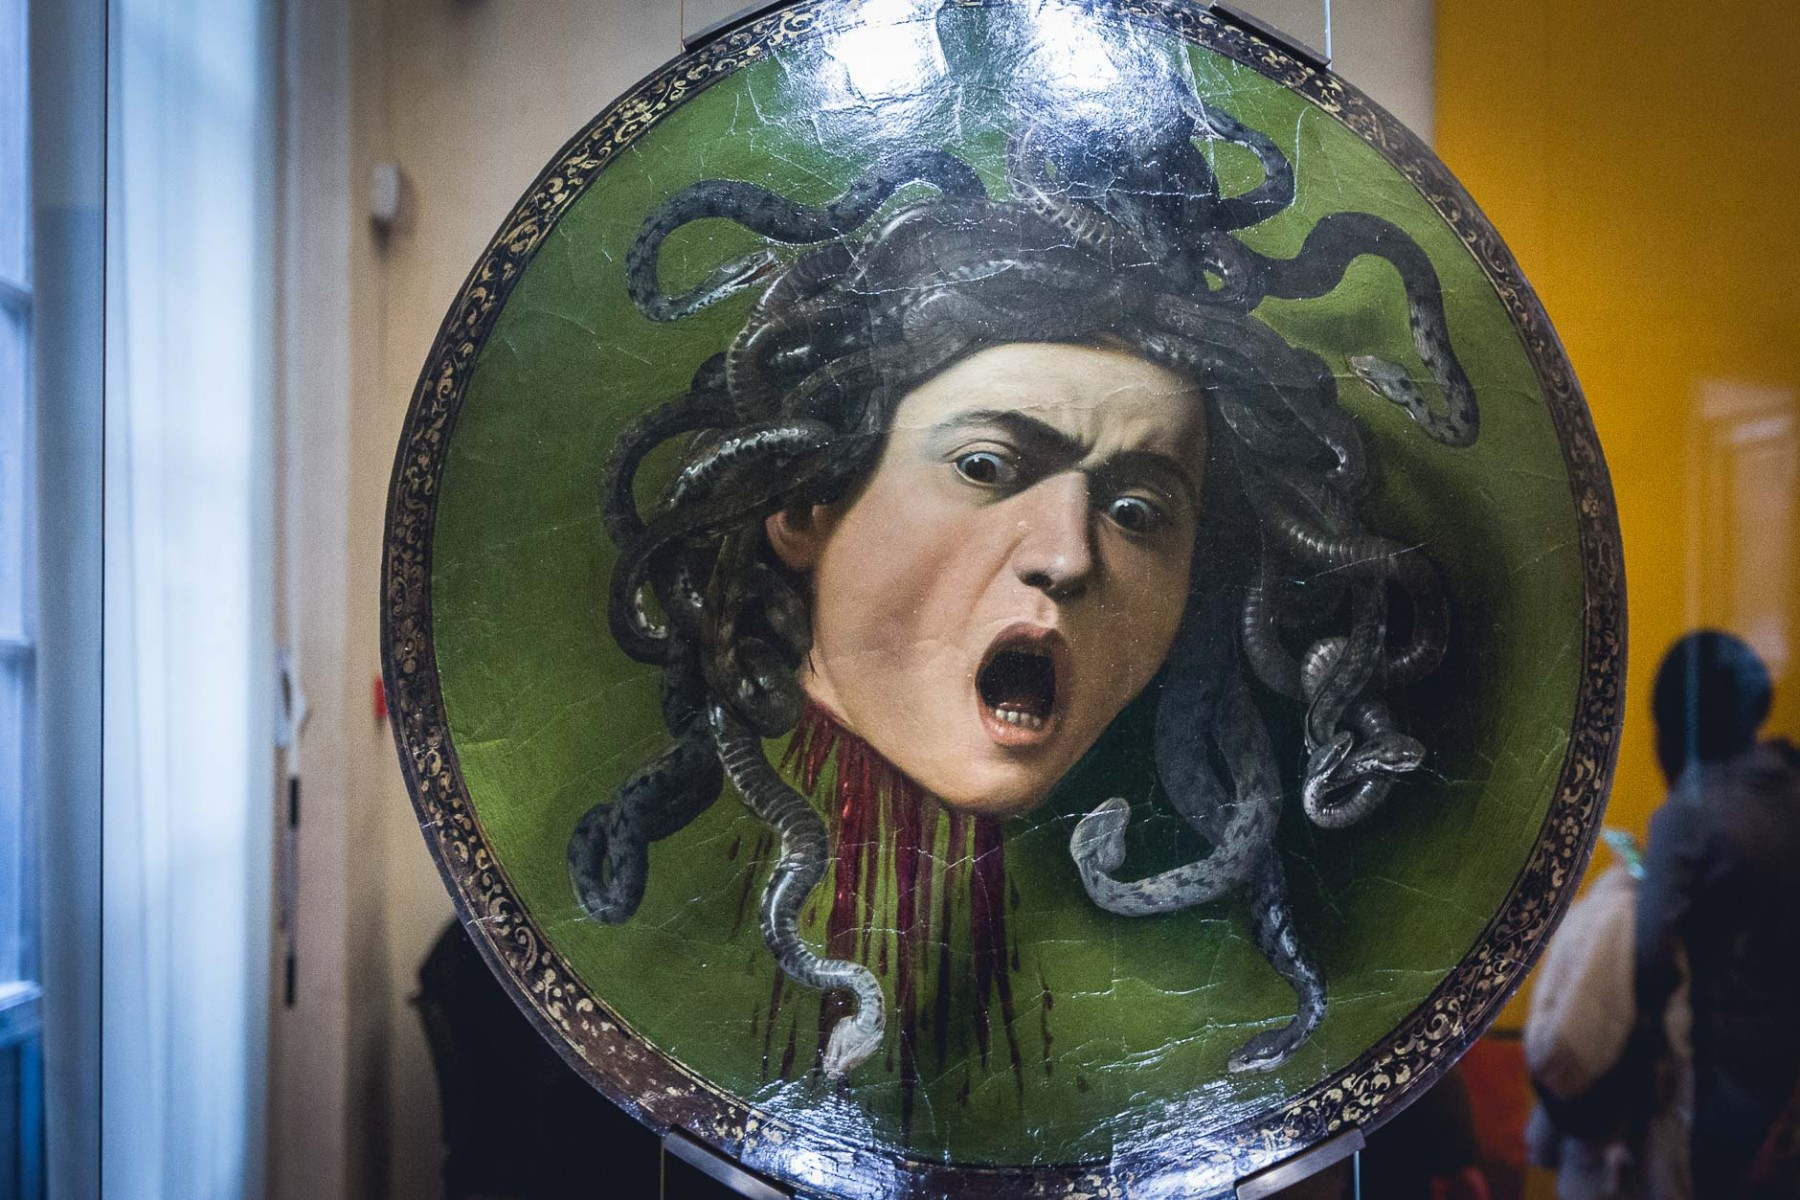 Caravaggio's Medusa, Florence, Italy